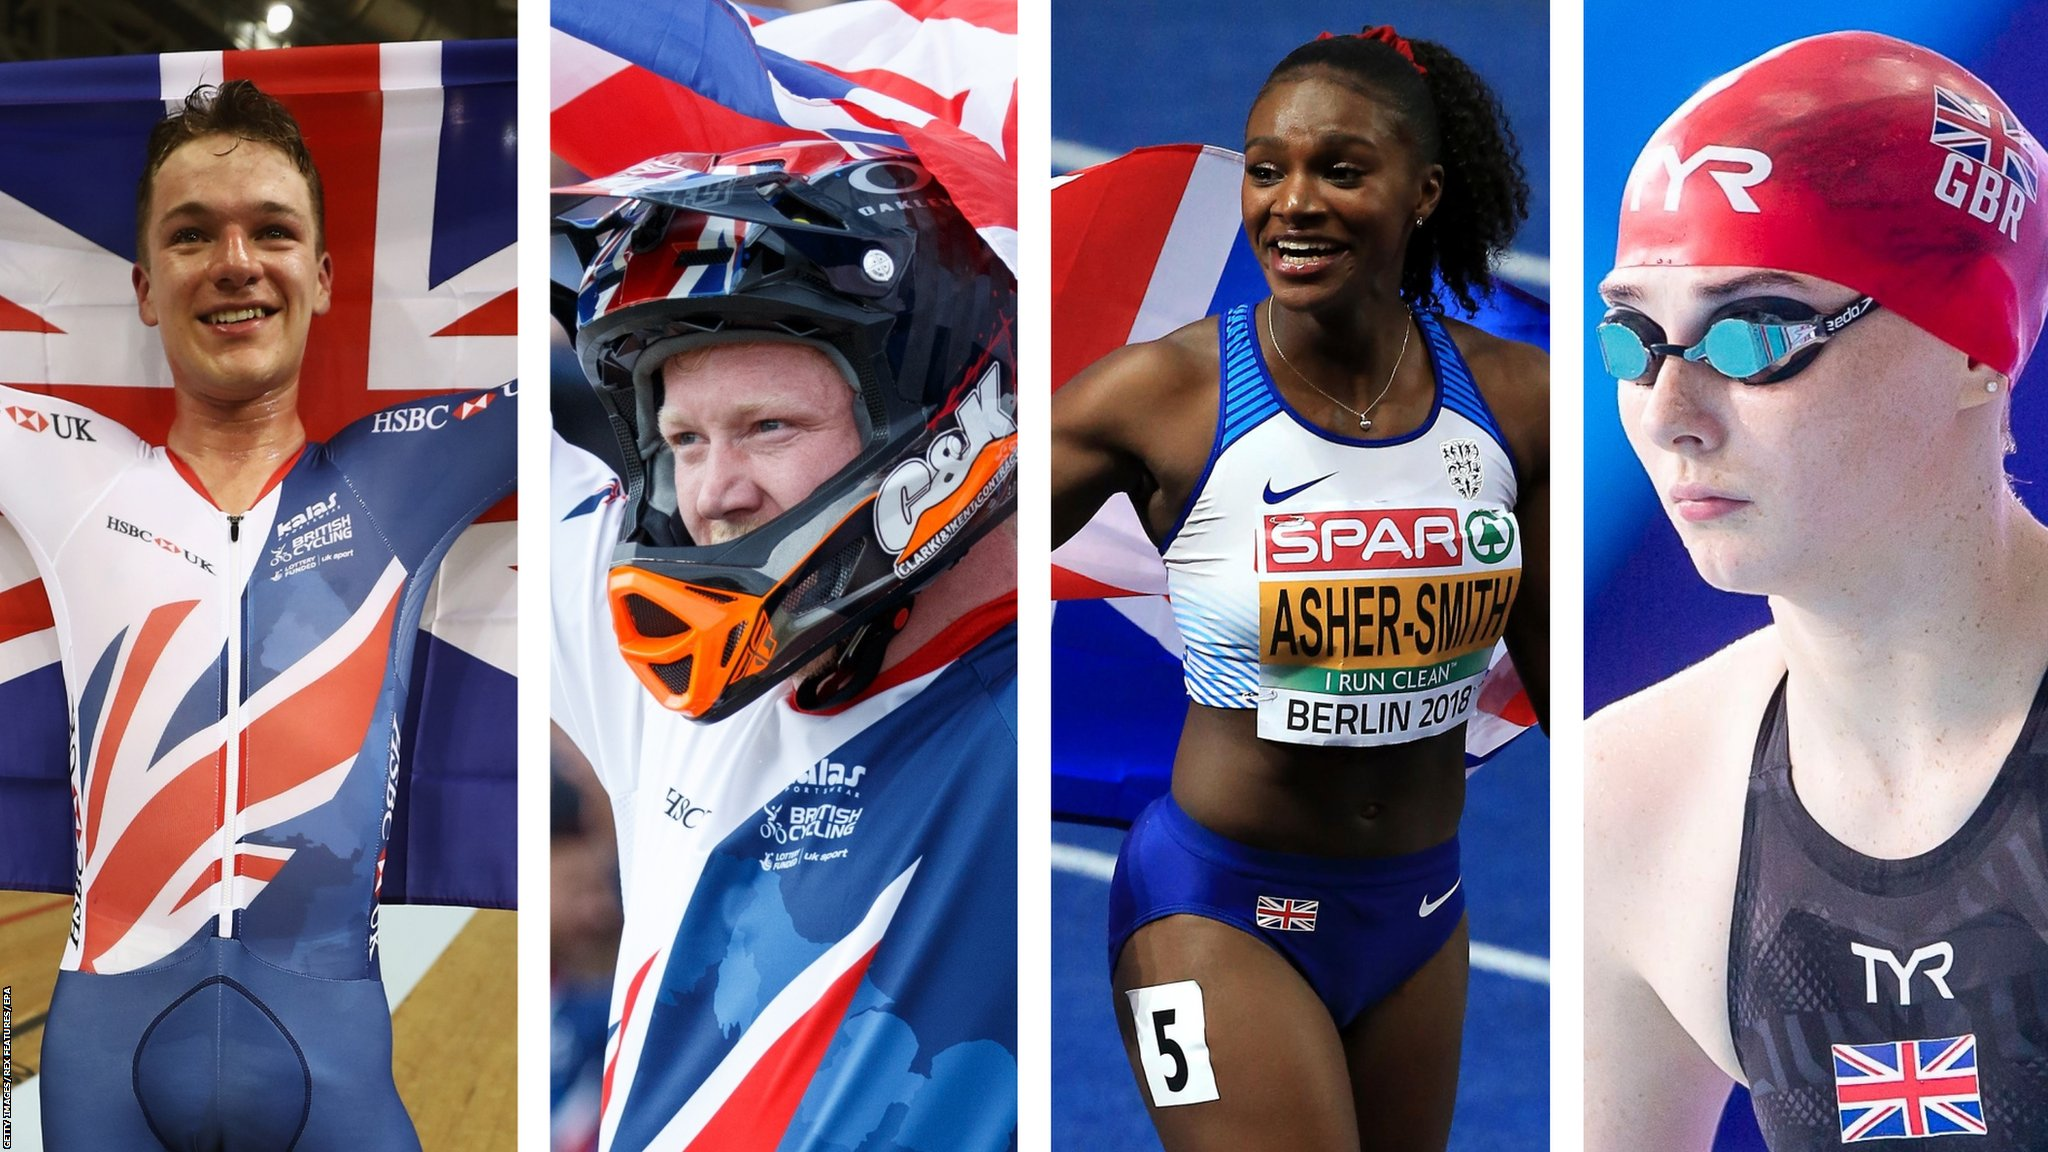 European Championships: British stars to follow for Tokyo 2020